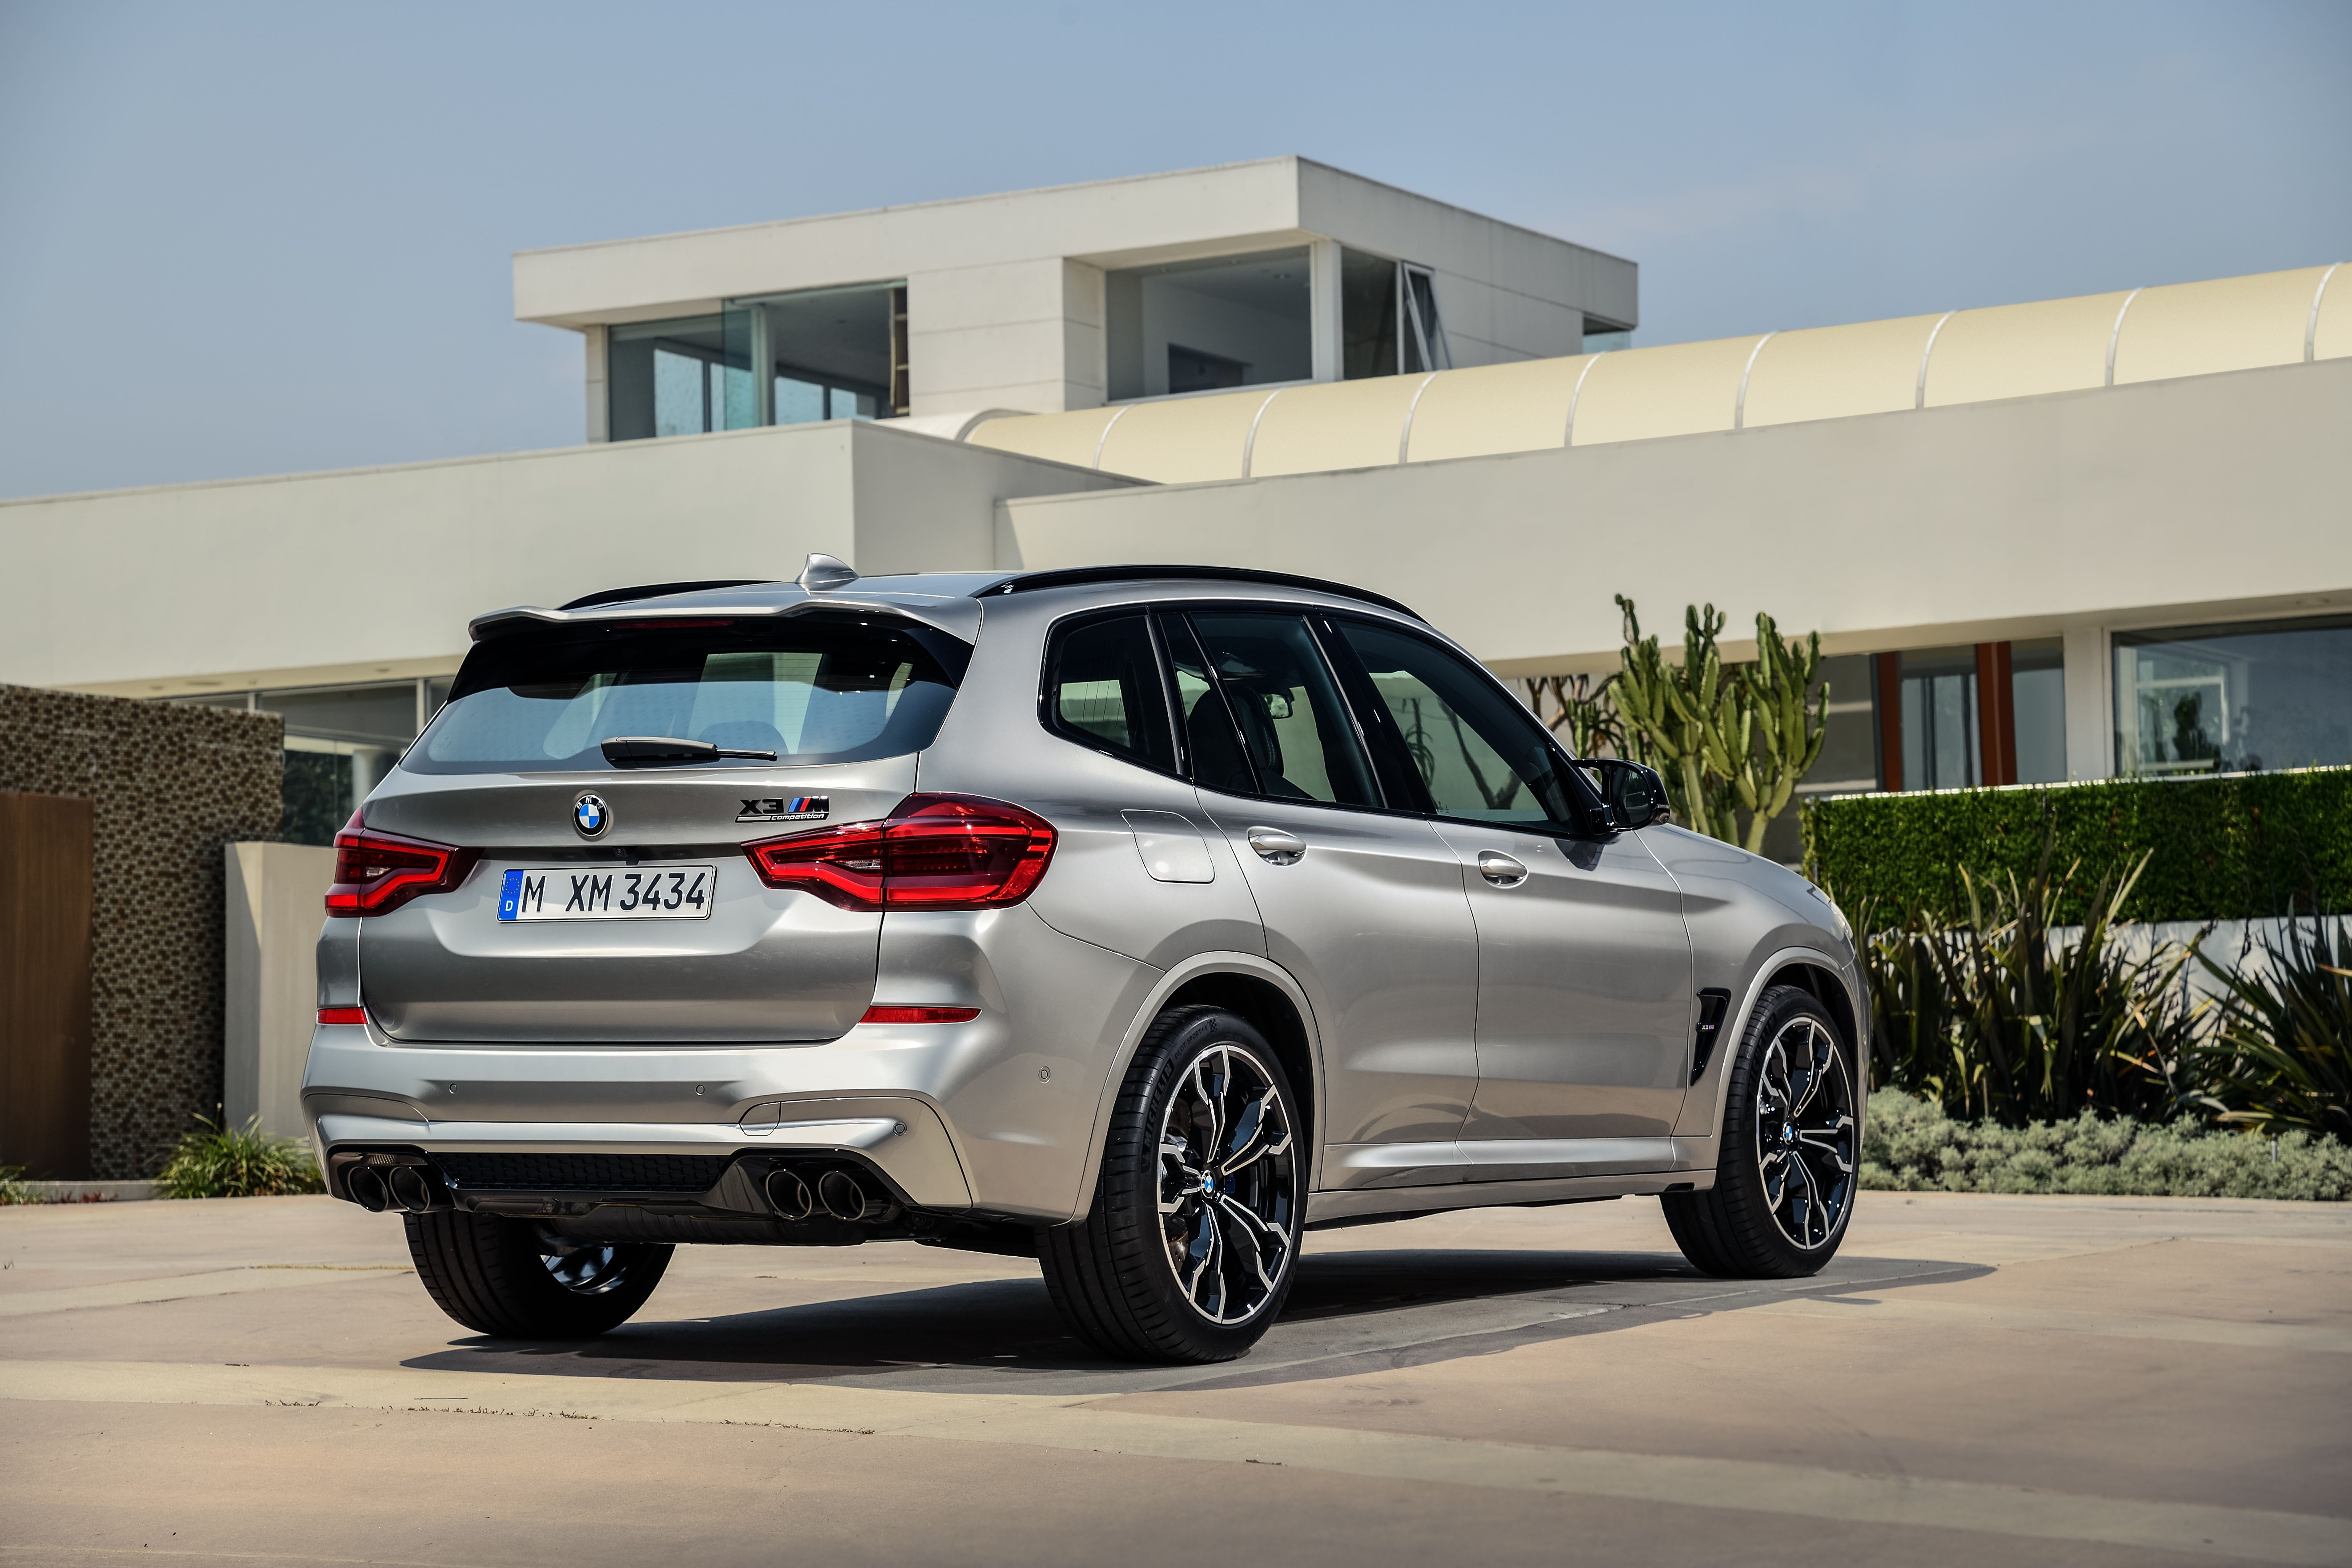 Bmw F97 X3m Competition Sav Mperformance Xdrive Sheerdrivingpleasure Offroad Outdoor Outside Tuning Badass Provocativeeyes Bmw X3 Bmw New Engine